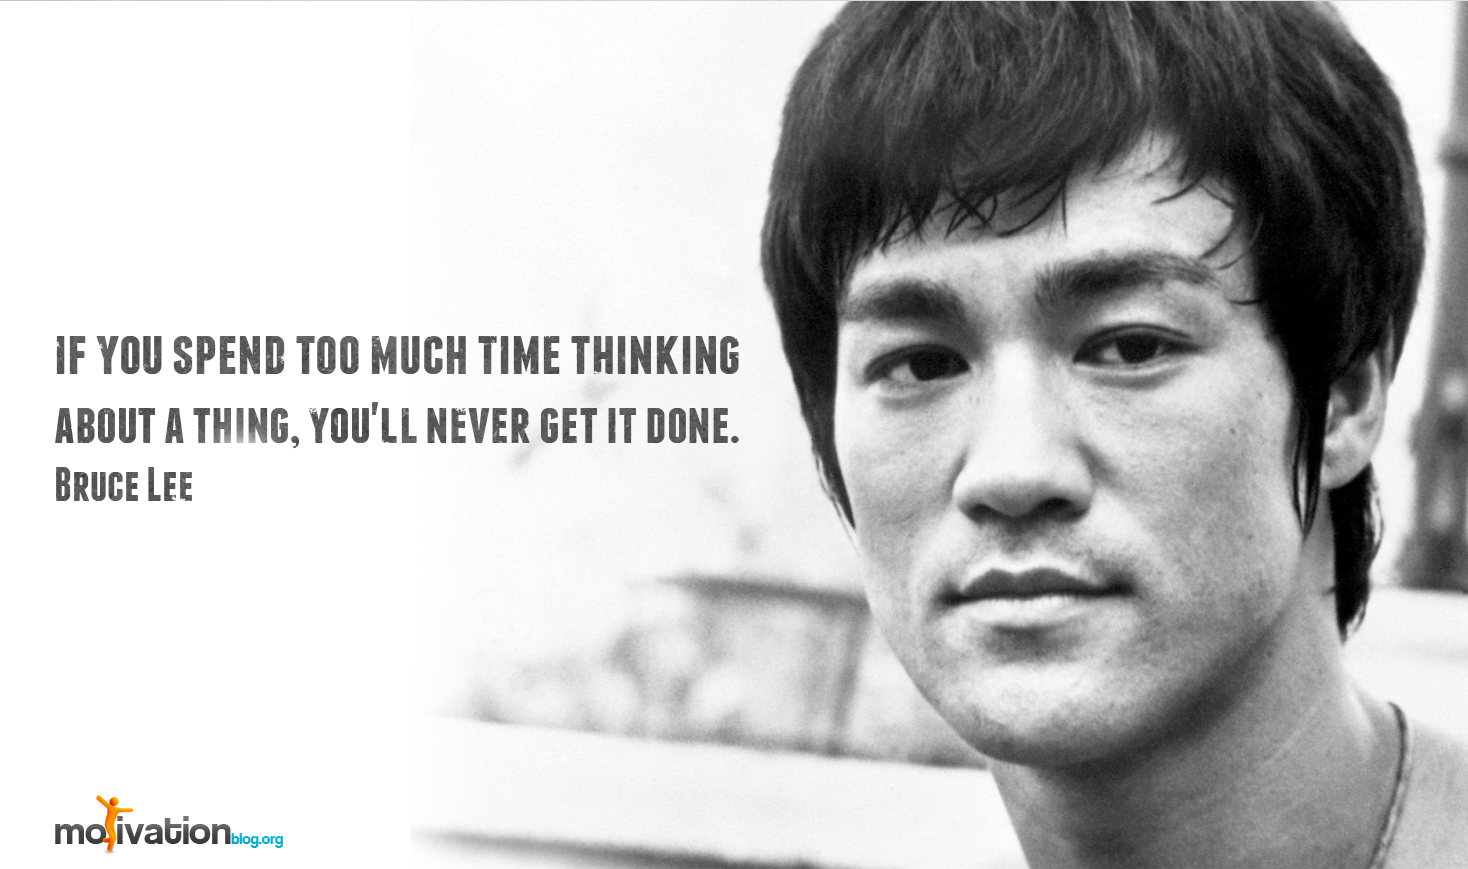 bruce lee too much thinking quote.jpg